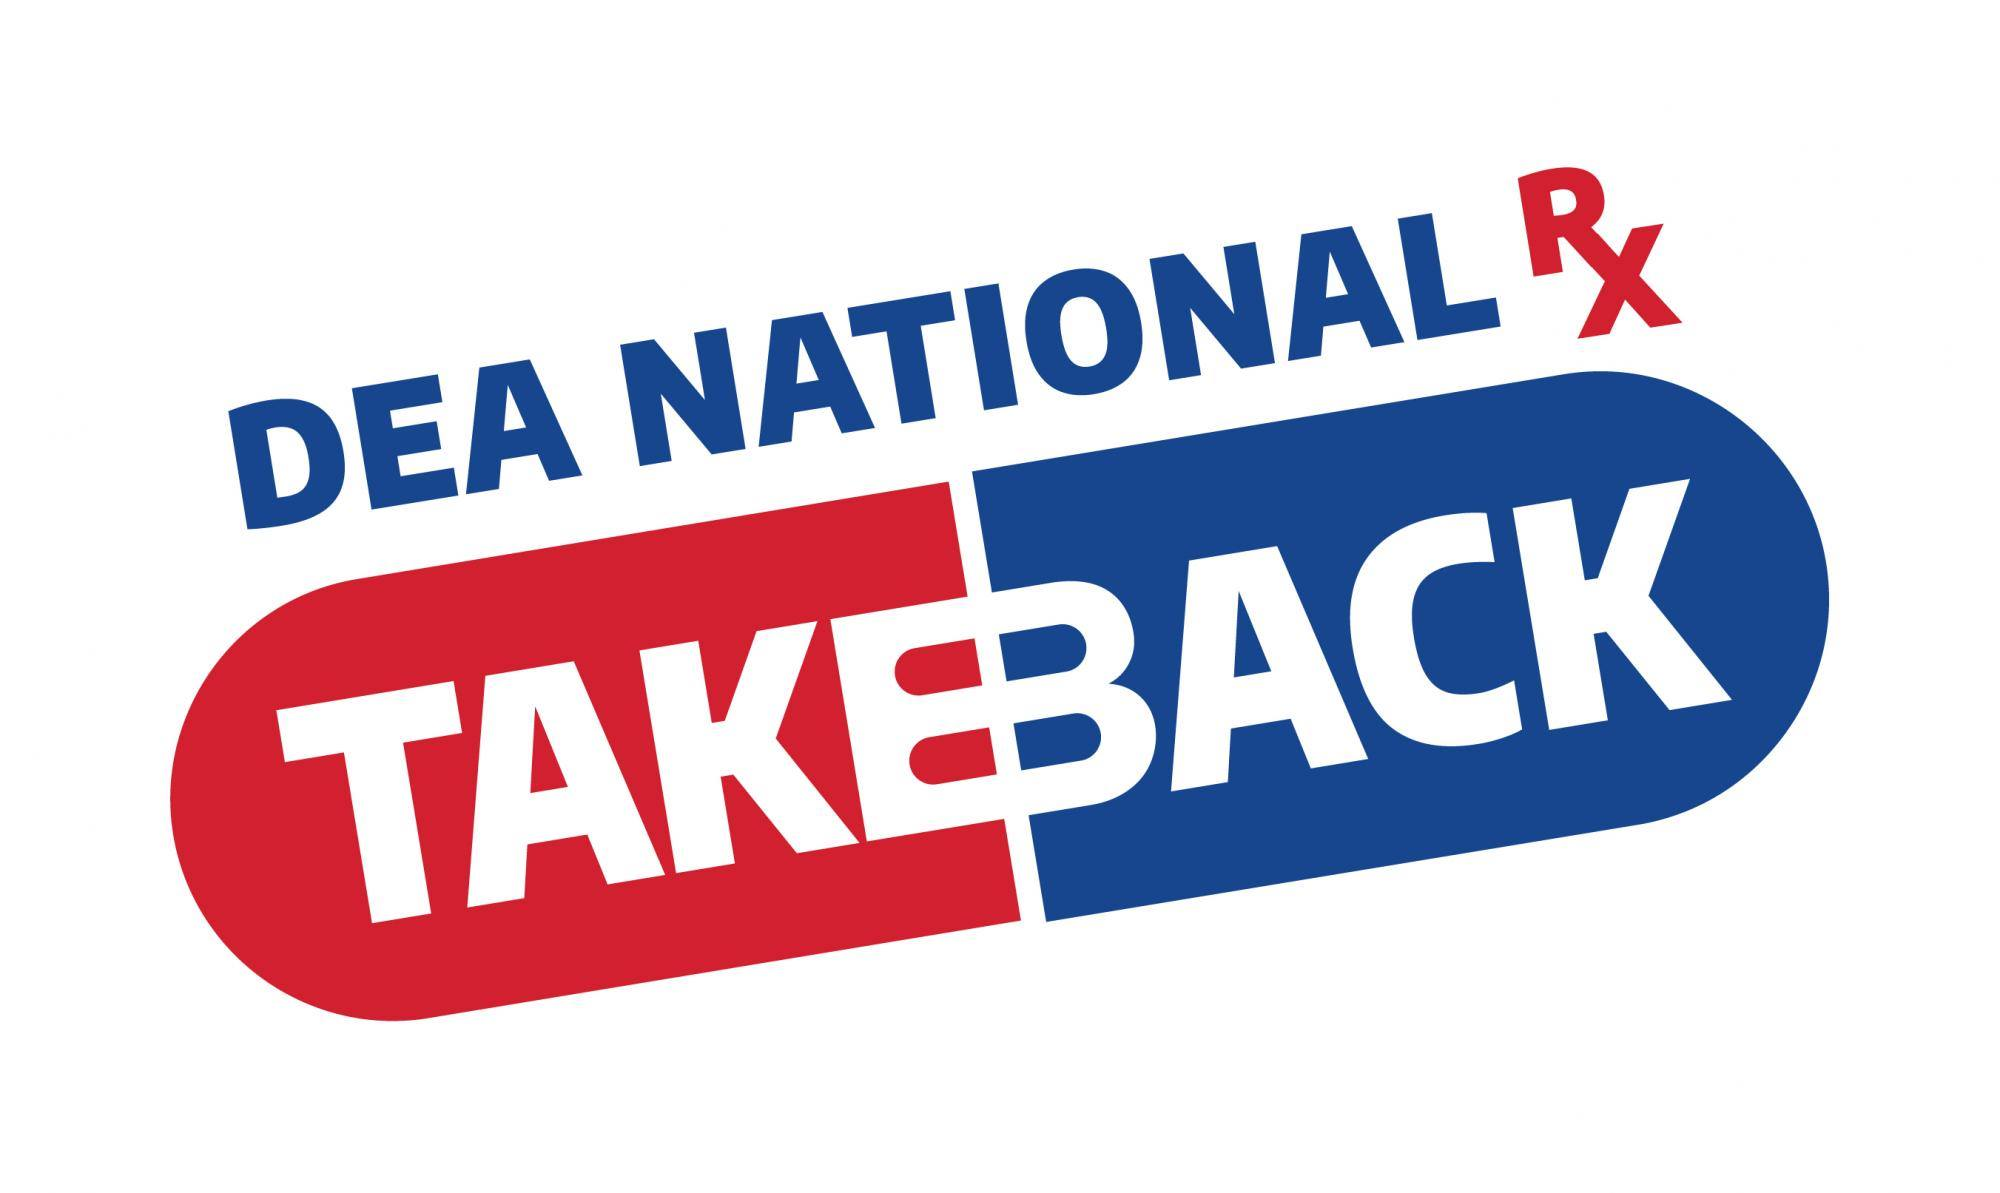 Red and blue graphic promoting National Drug Take Back Day